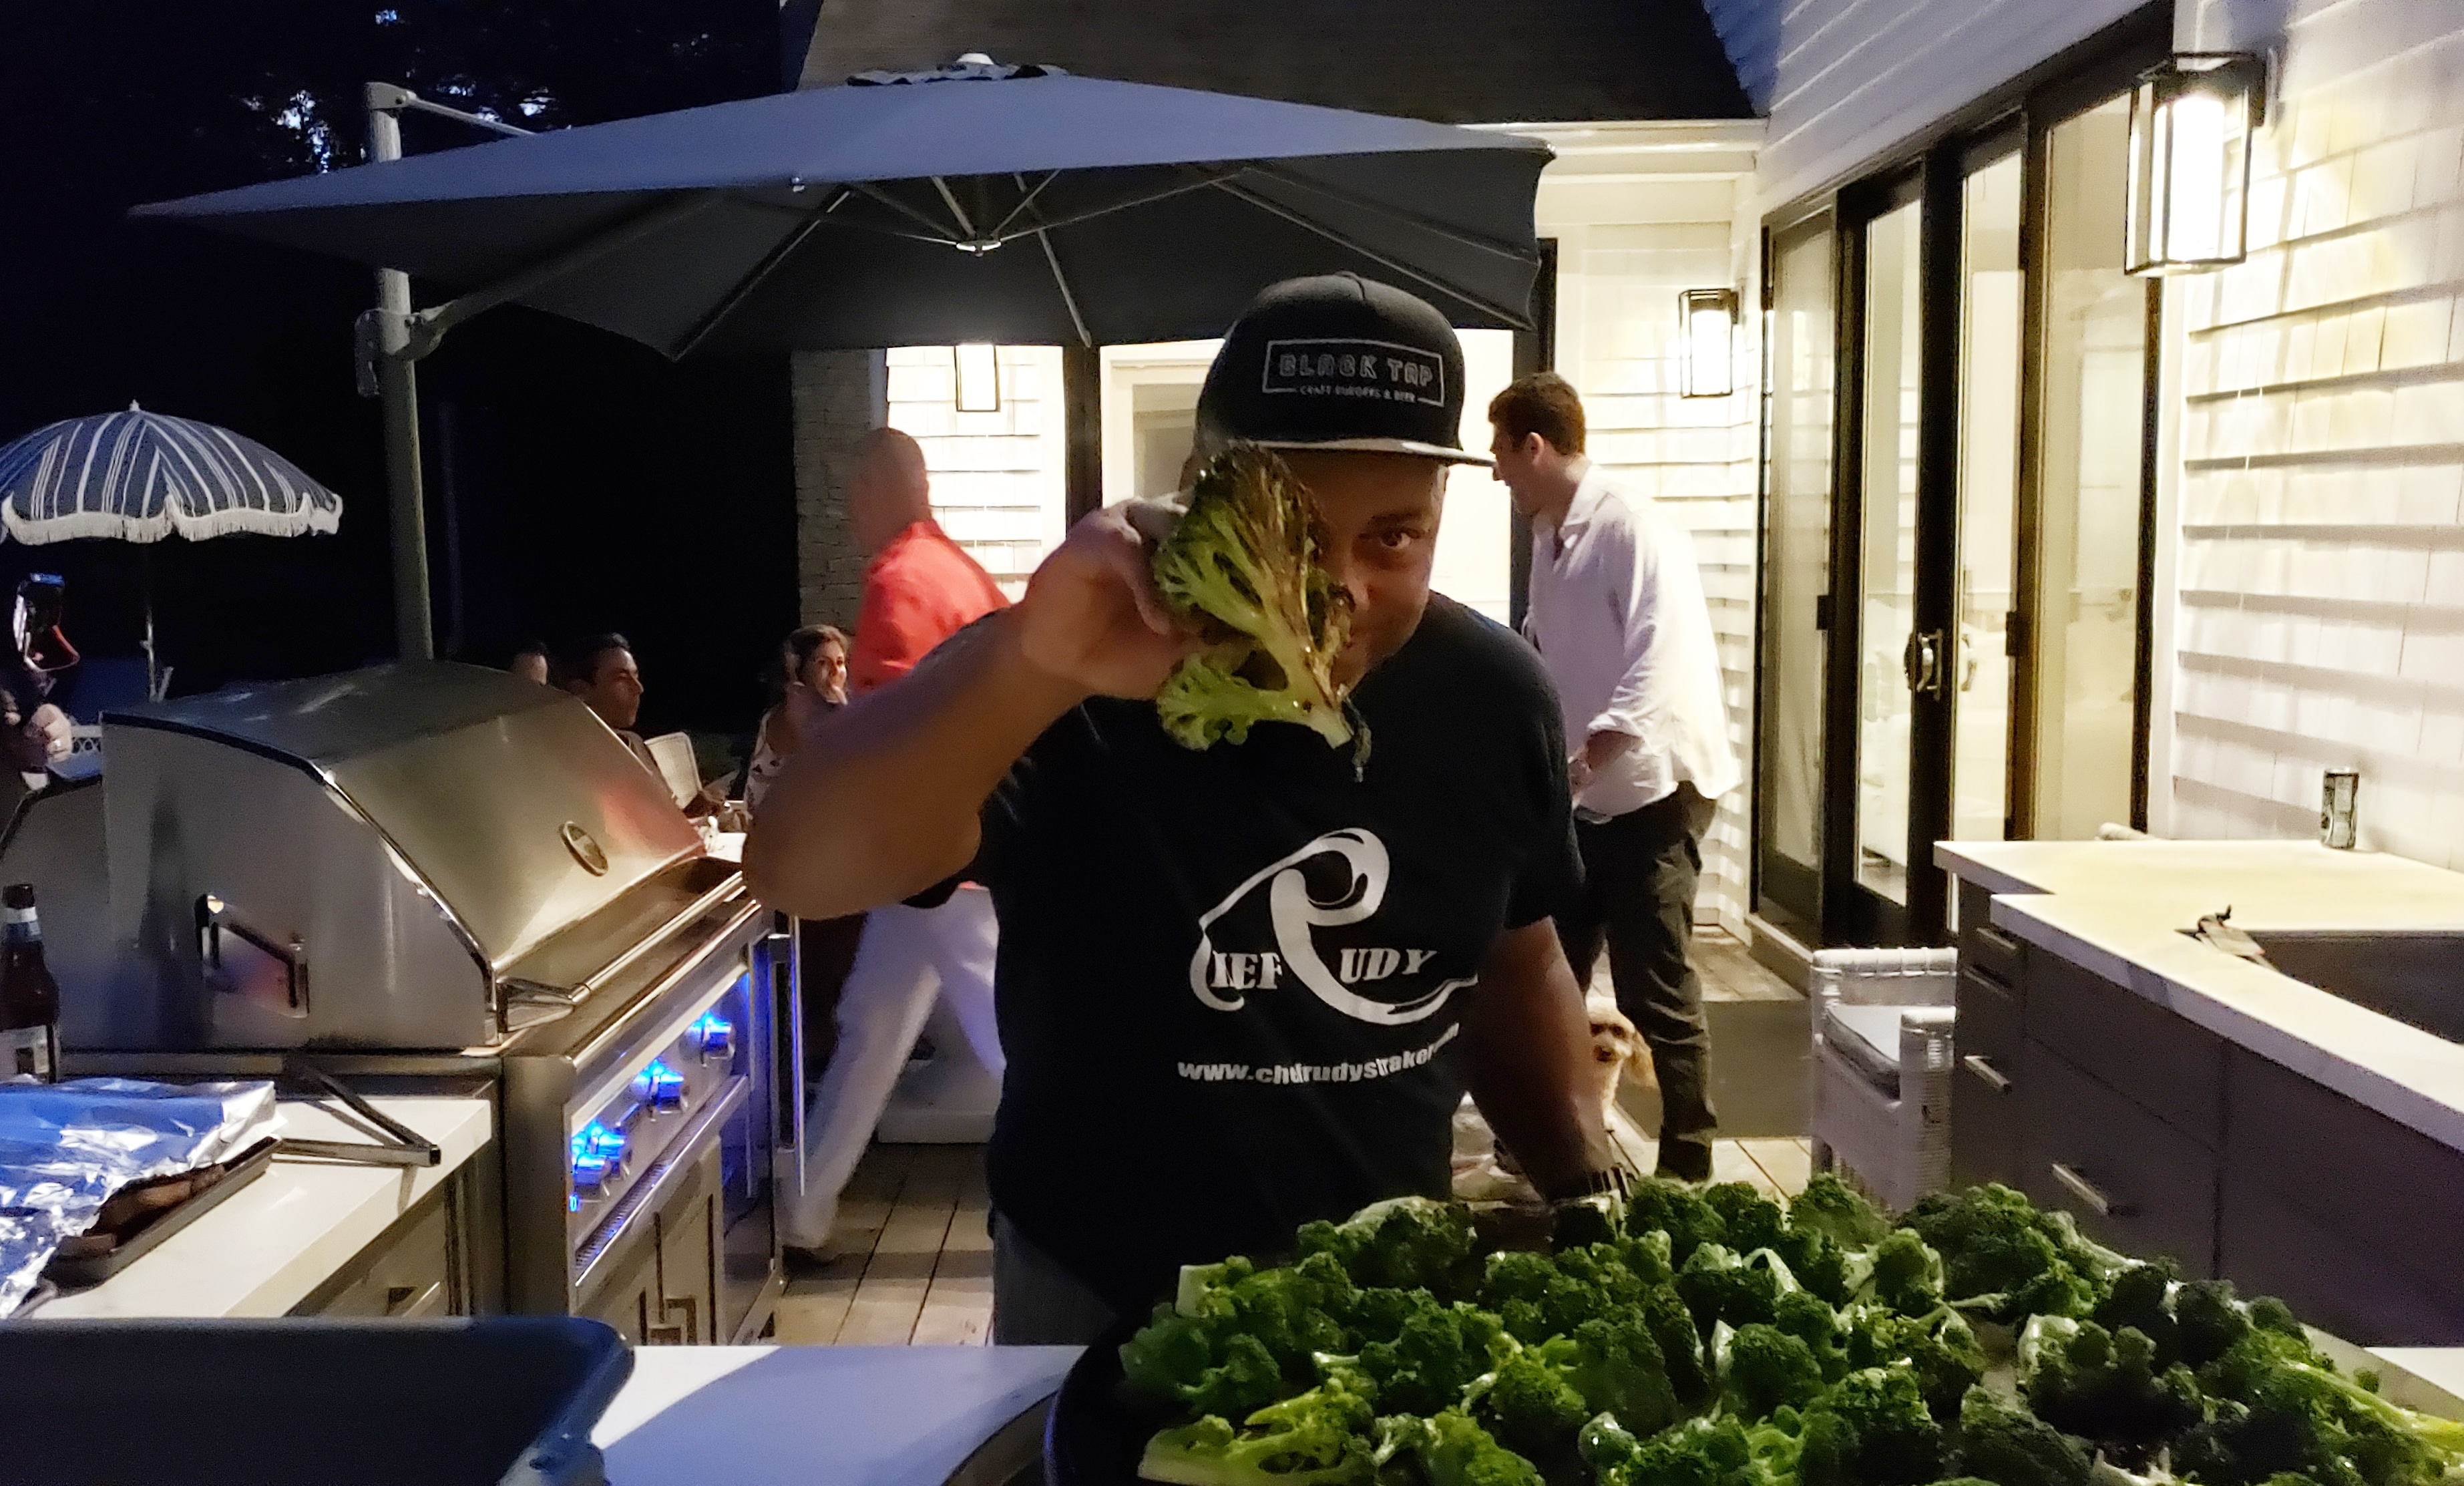 Chef Rudy cooking burnt garlic broccoli on the EVO grill